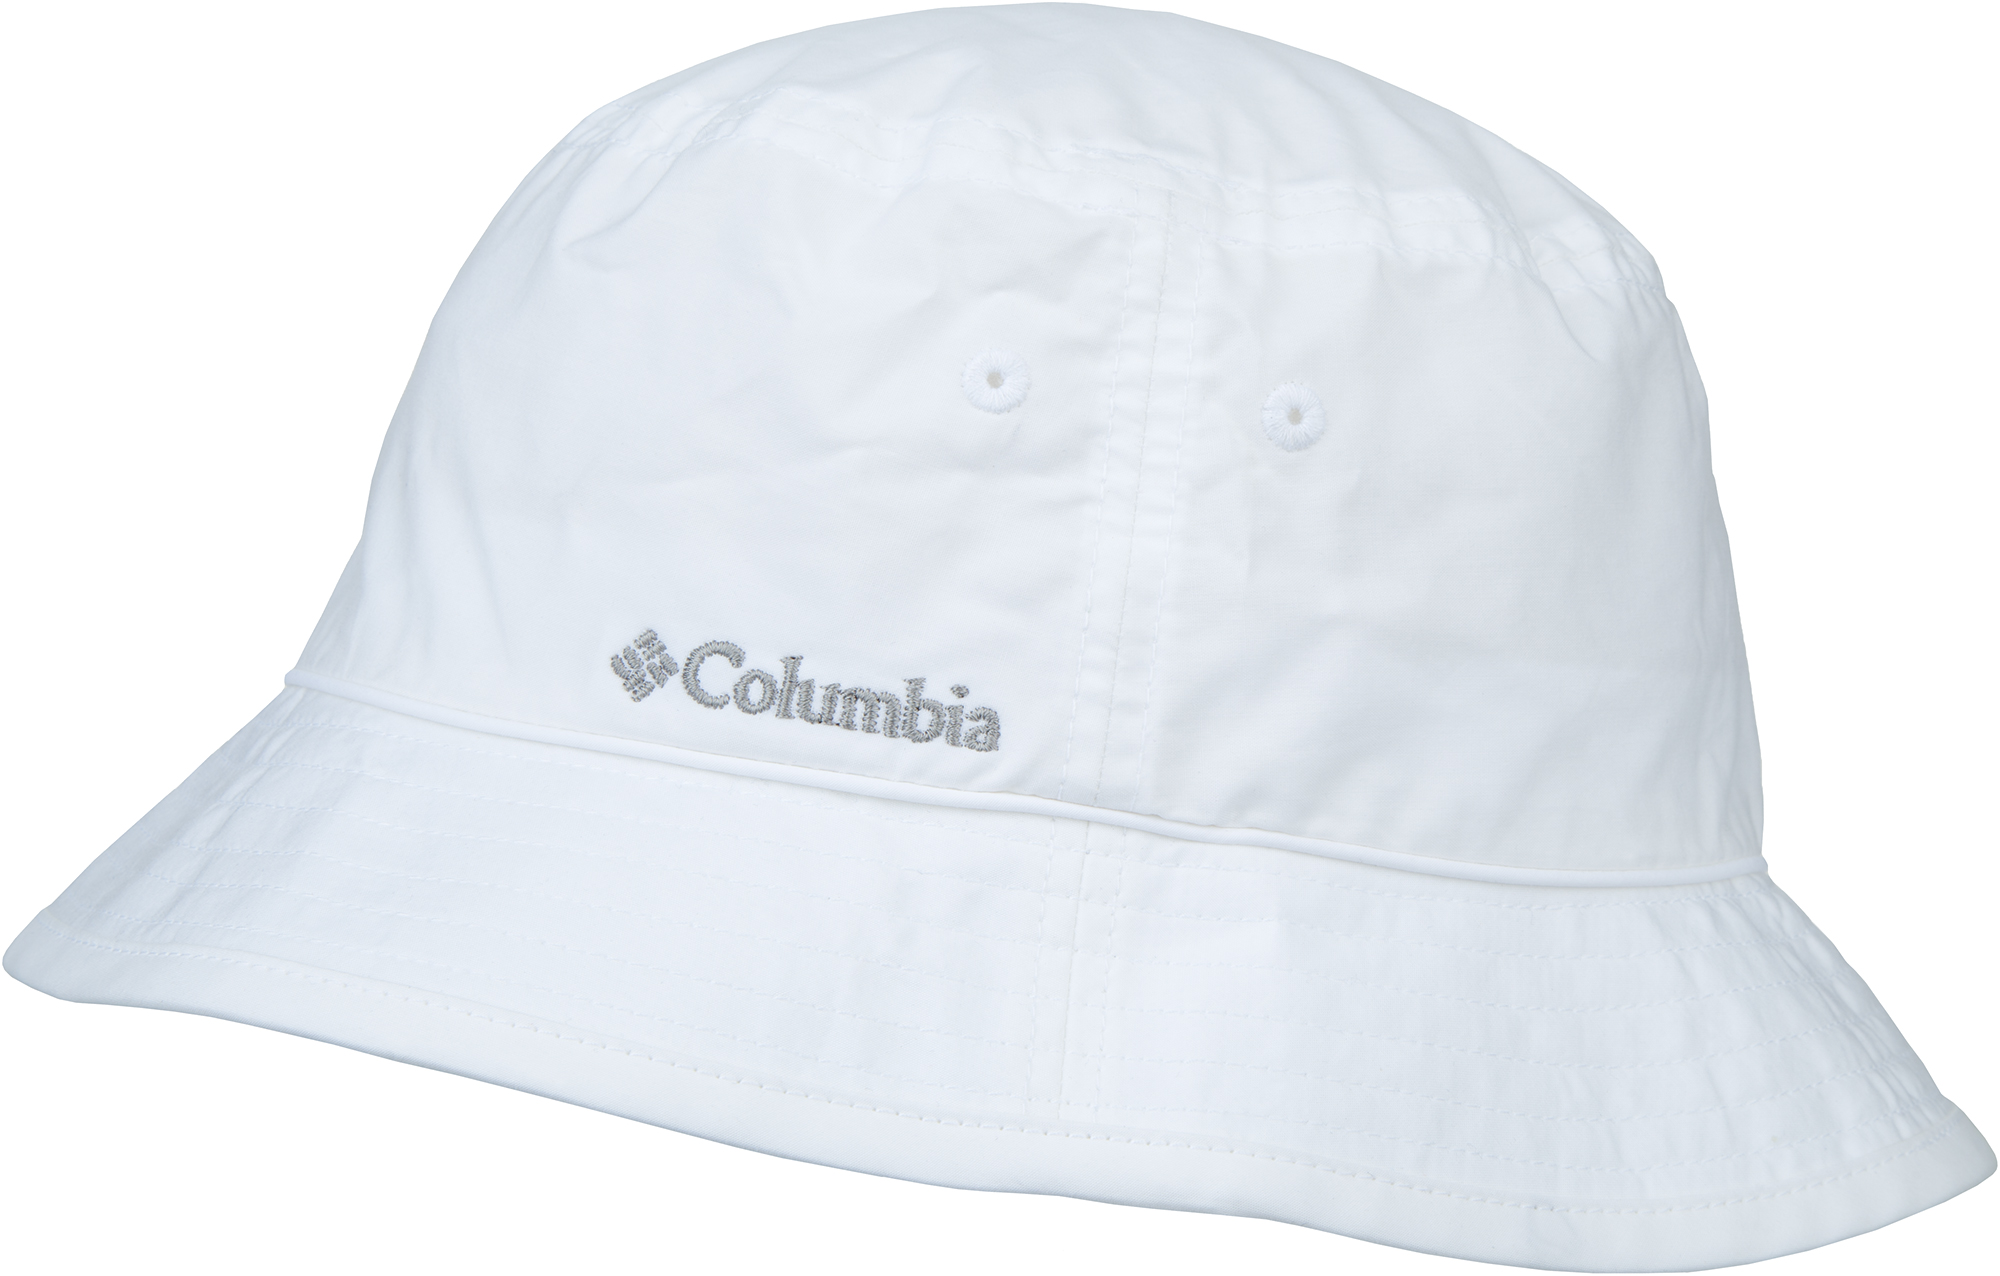 Columbia Панама Columbia Pine Mountain Bucket, размер 58-59